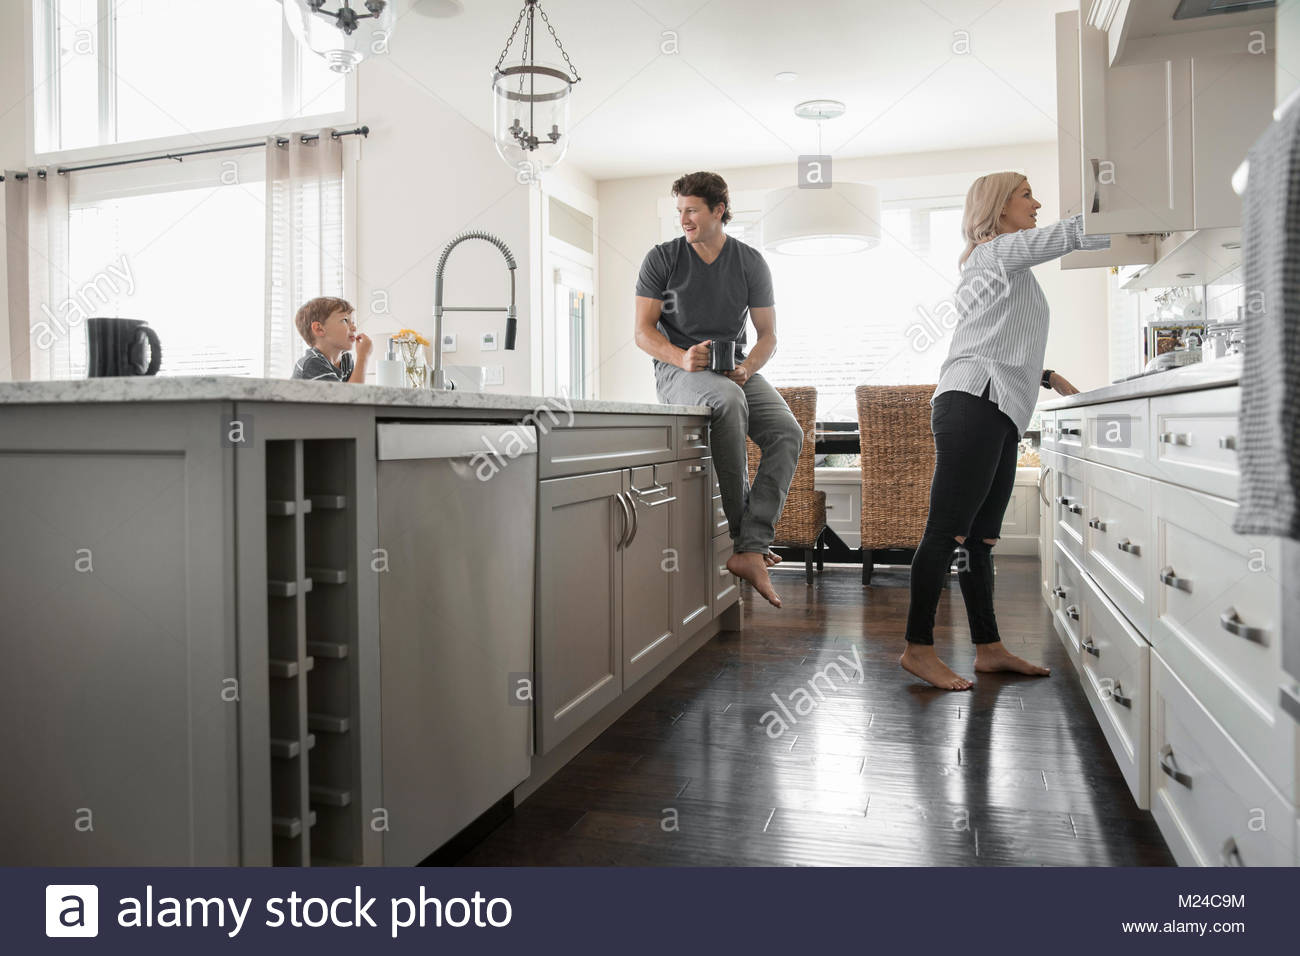 Family in kitchen - Stock Image